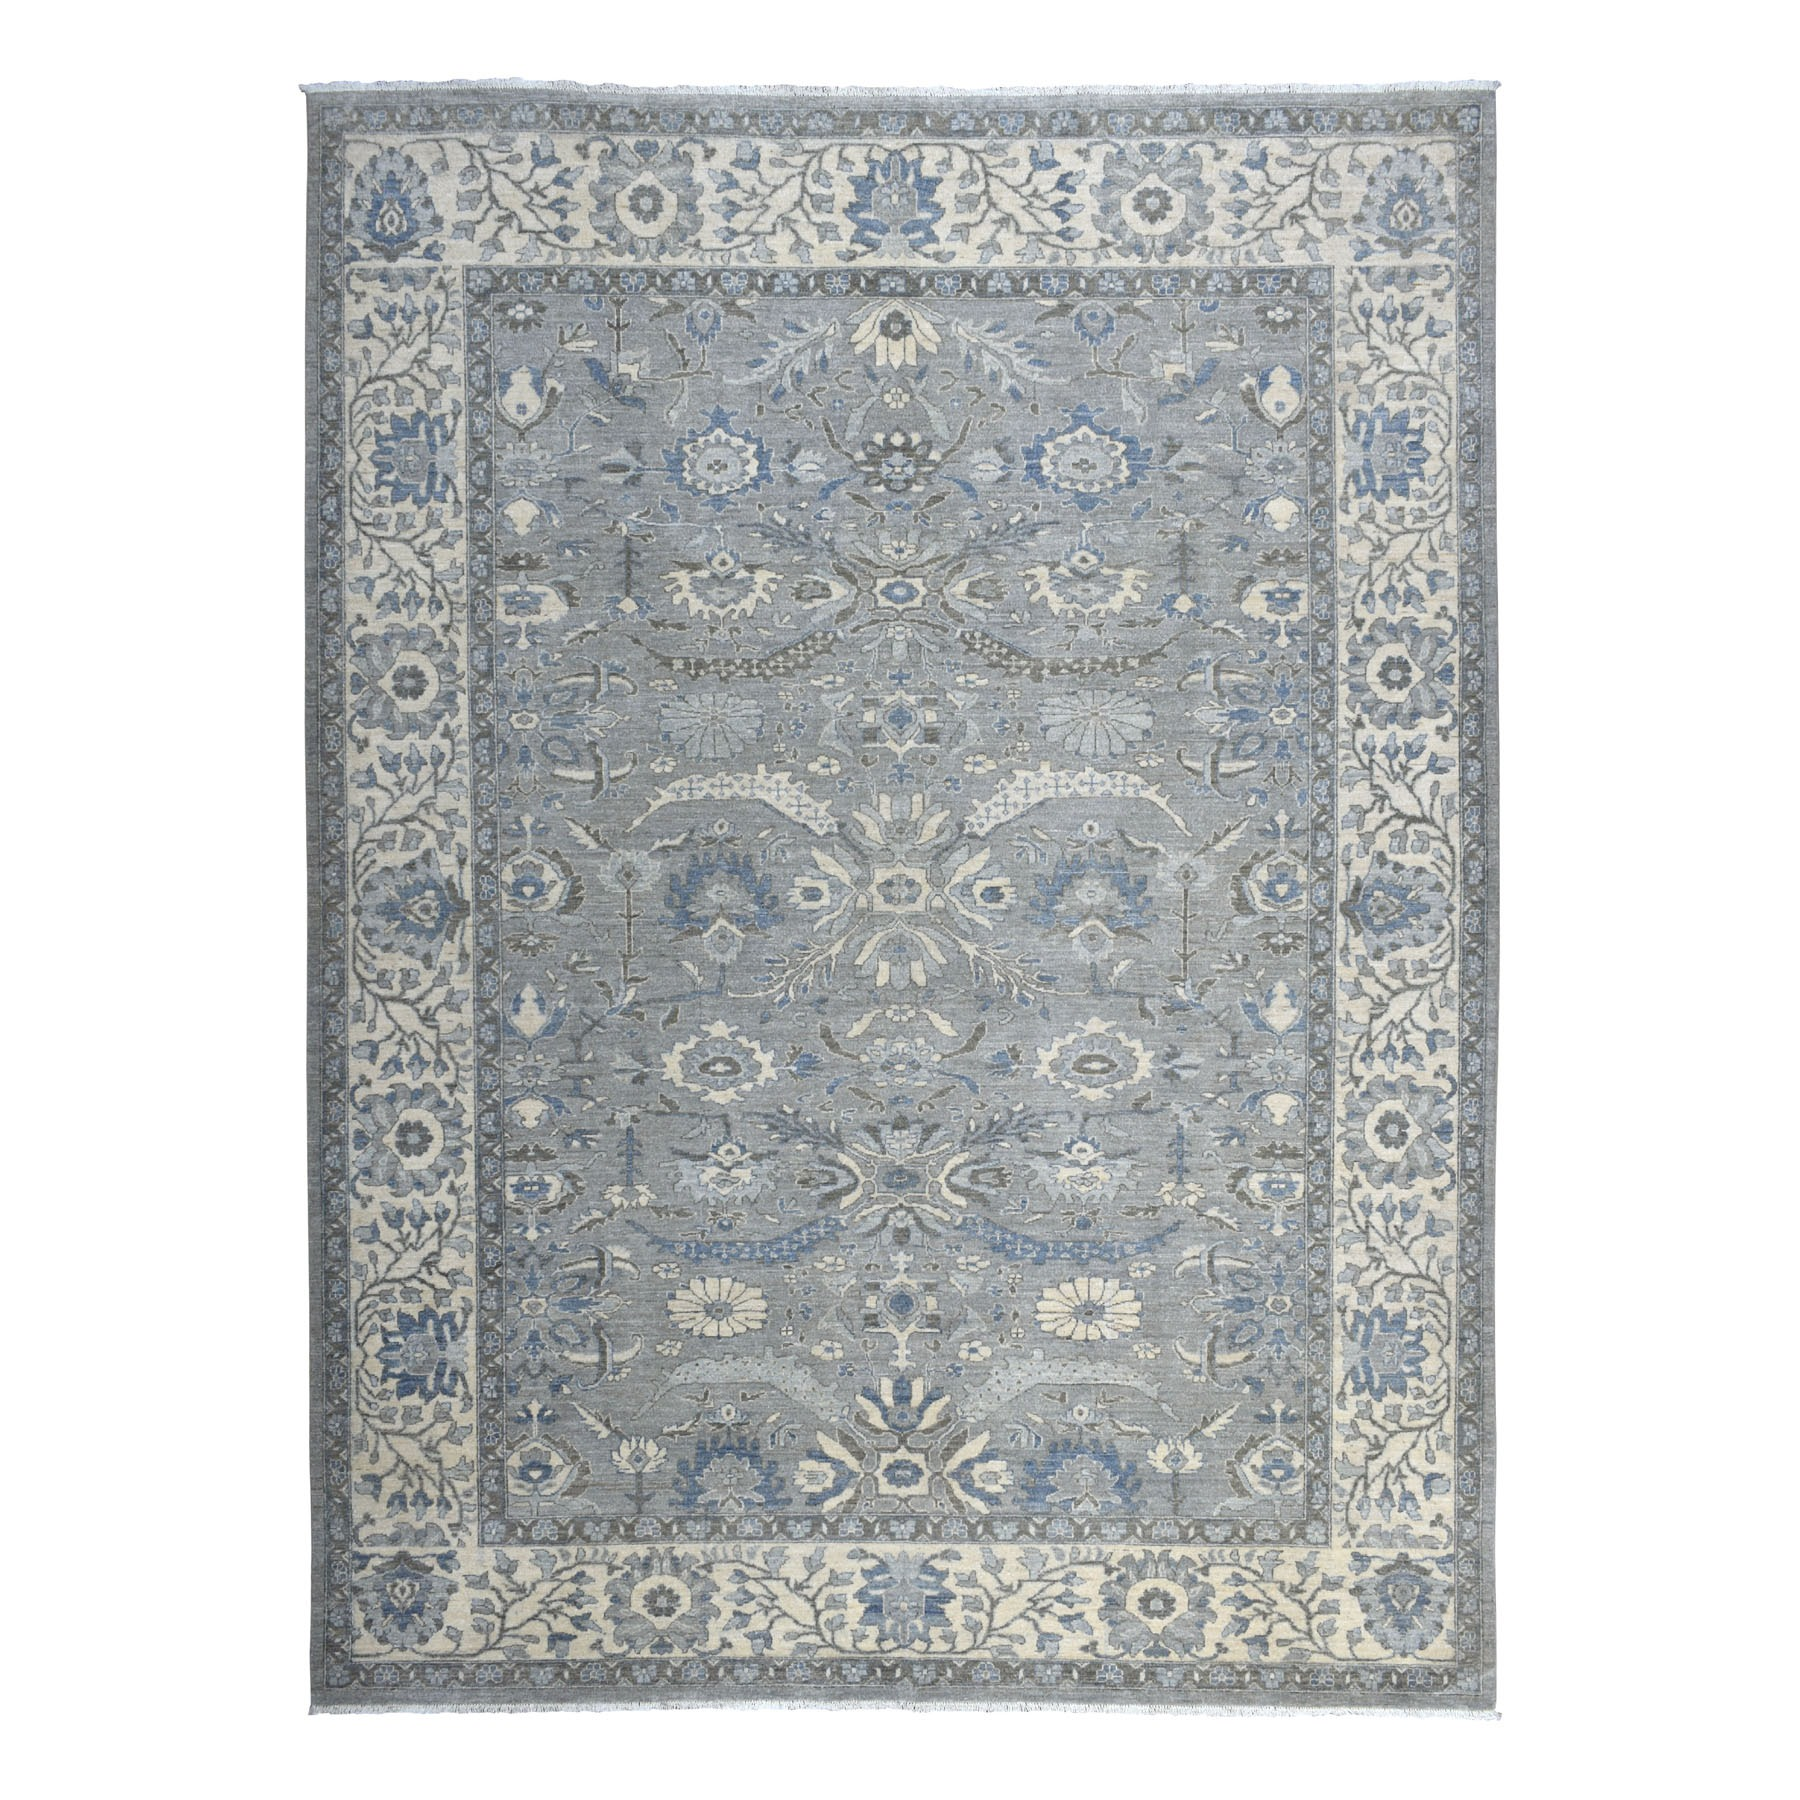 "9'1""X12' Gray Peshawar With Ziegler Mahal Design Silver Wash Hand Knotted Oriental Rug moaedb08"